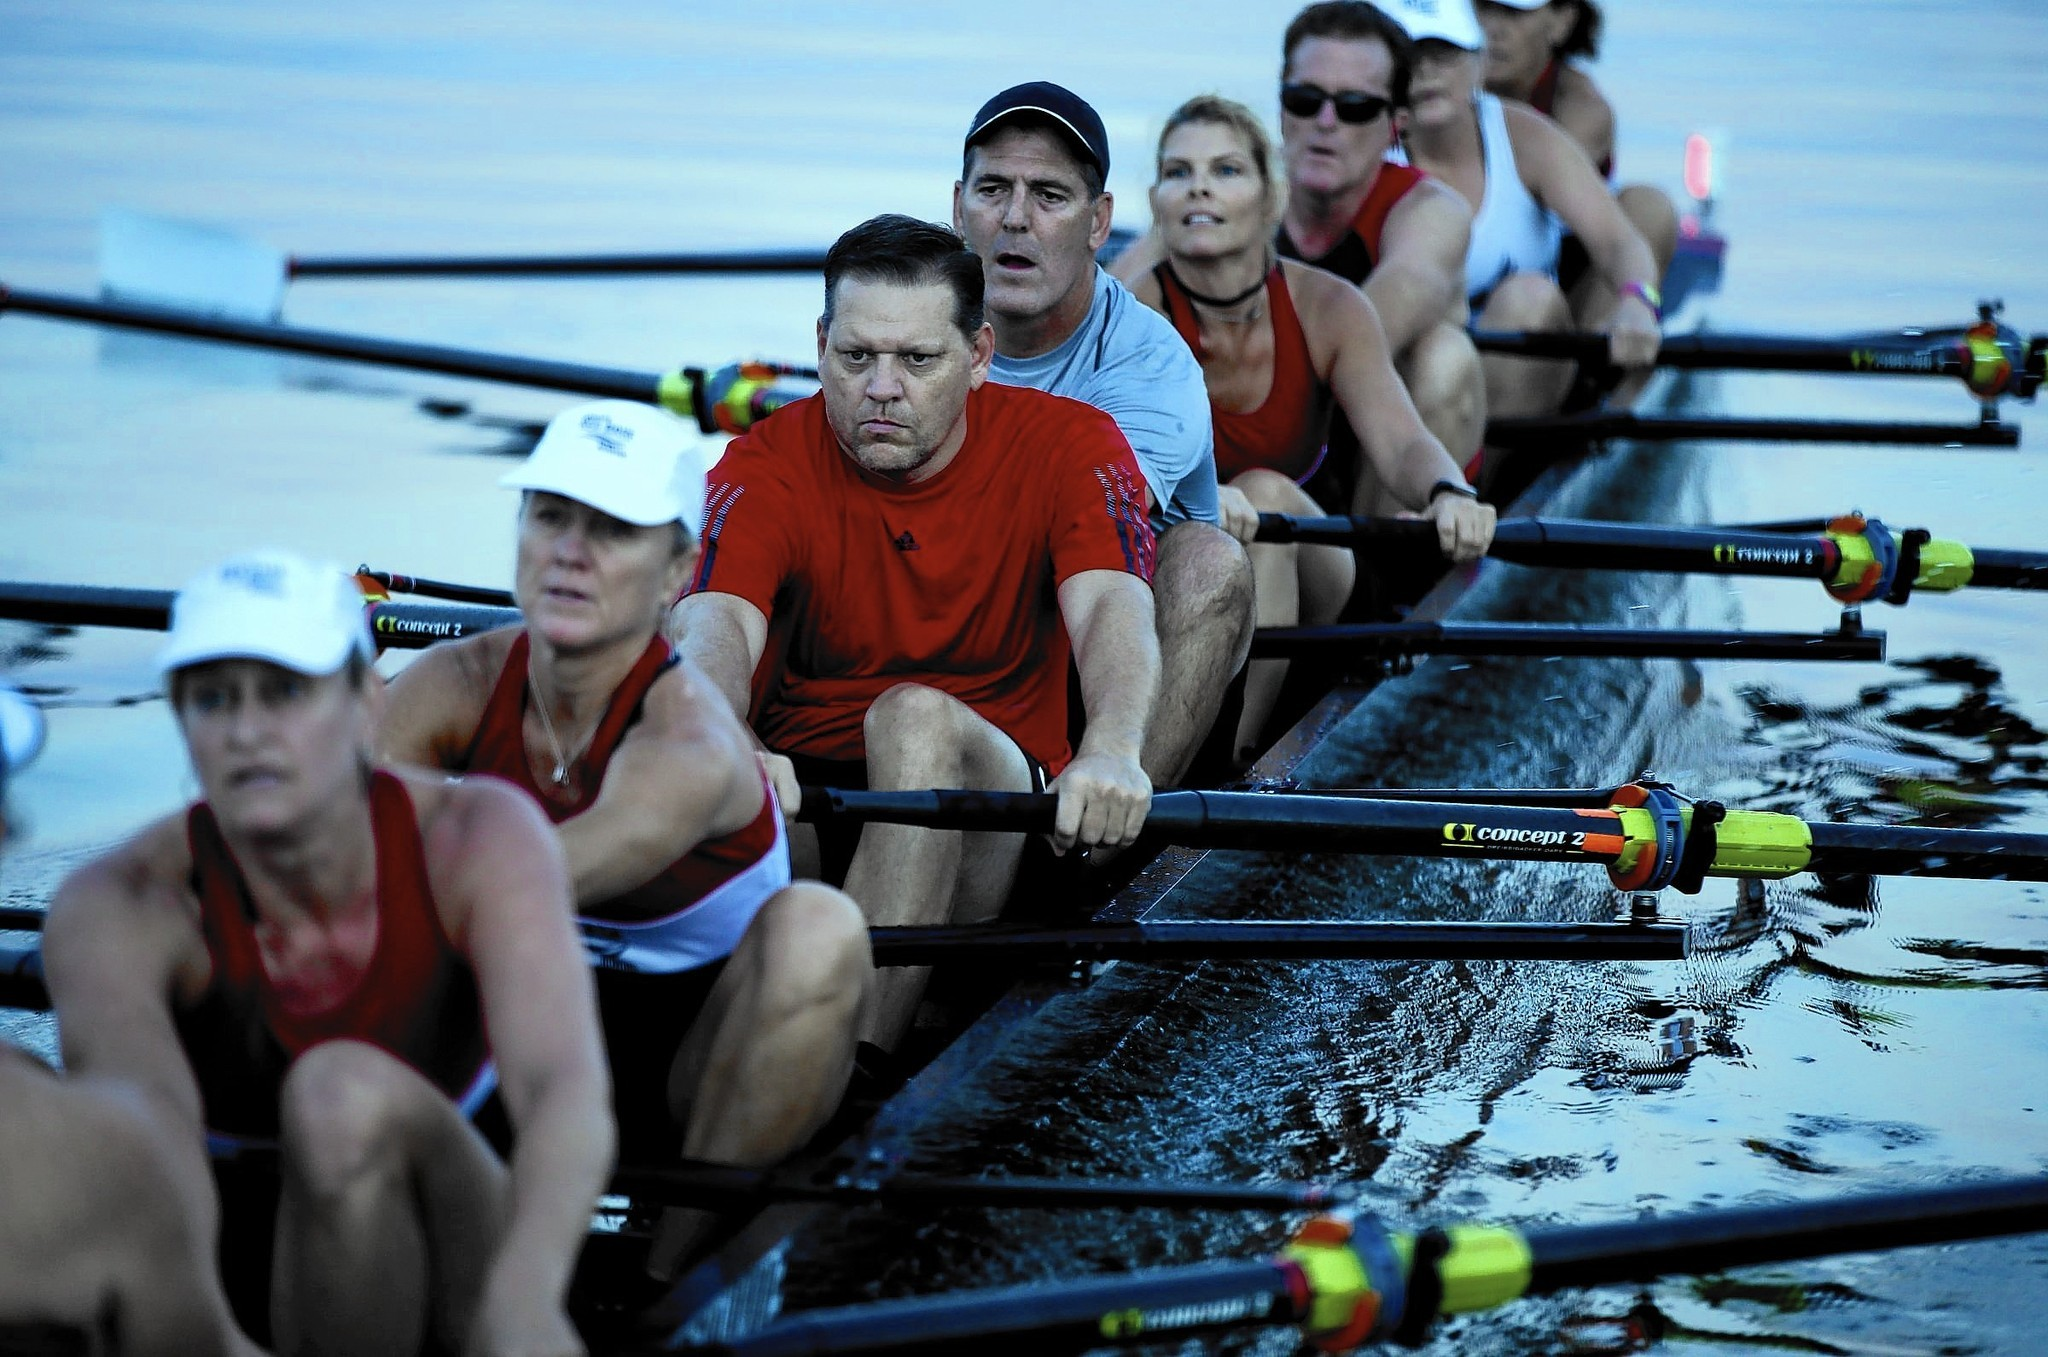 Rowing is a full-body workout that makes you want to go ...